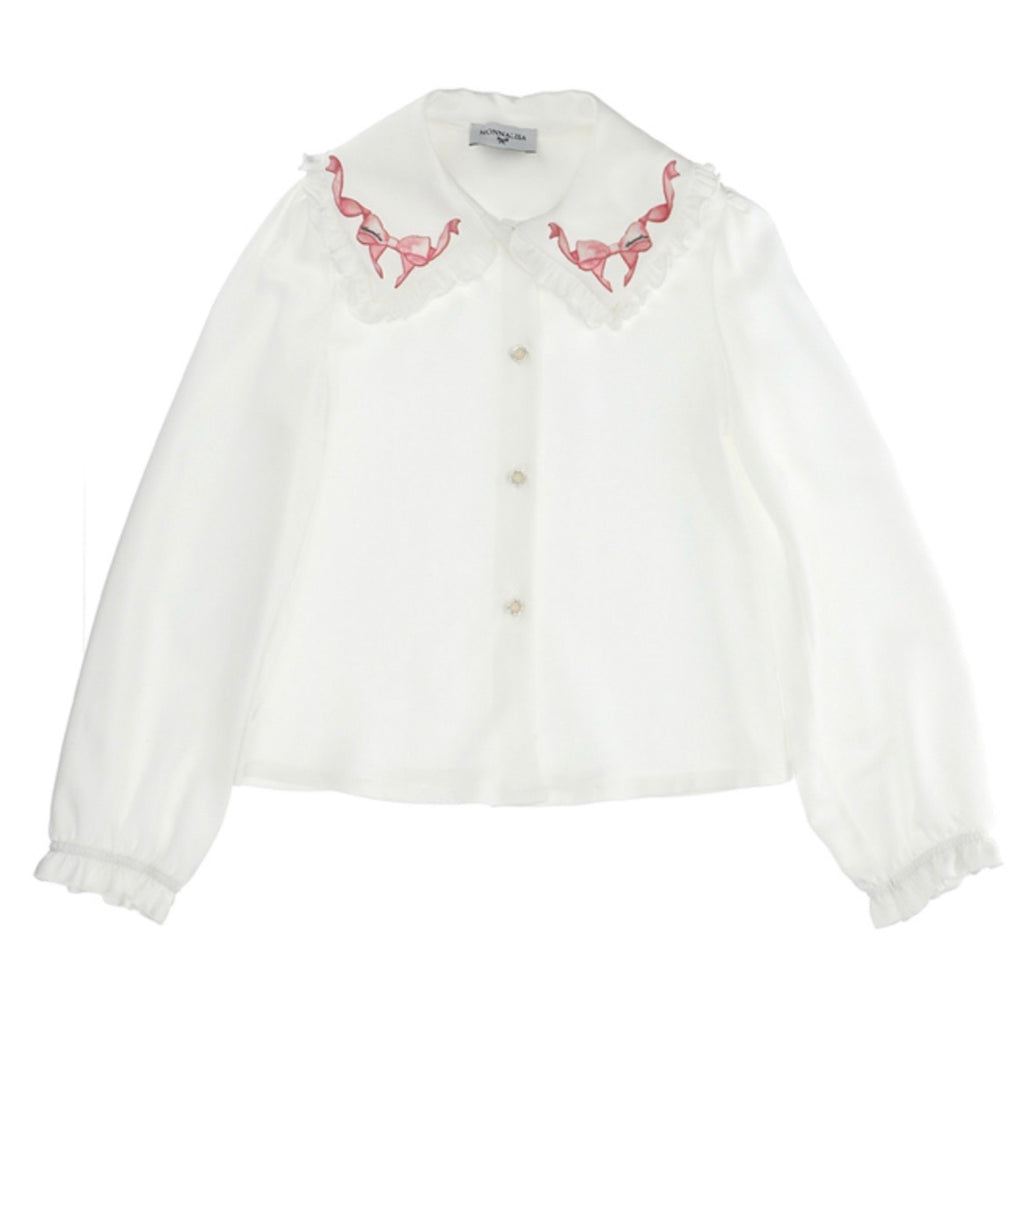 Monnalisa Bimba Alice In Wonderland Blouse